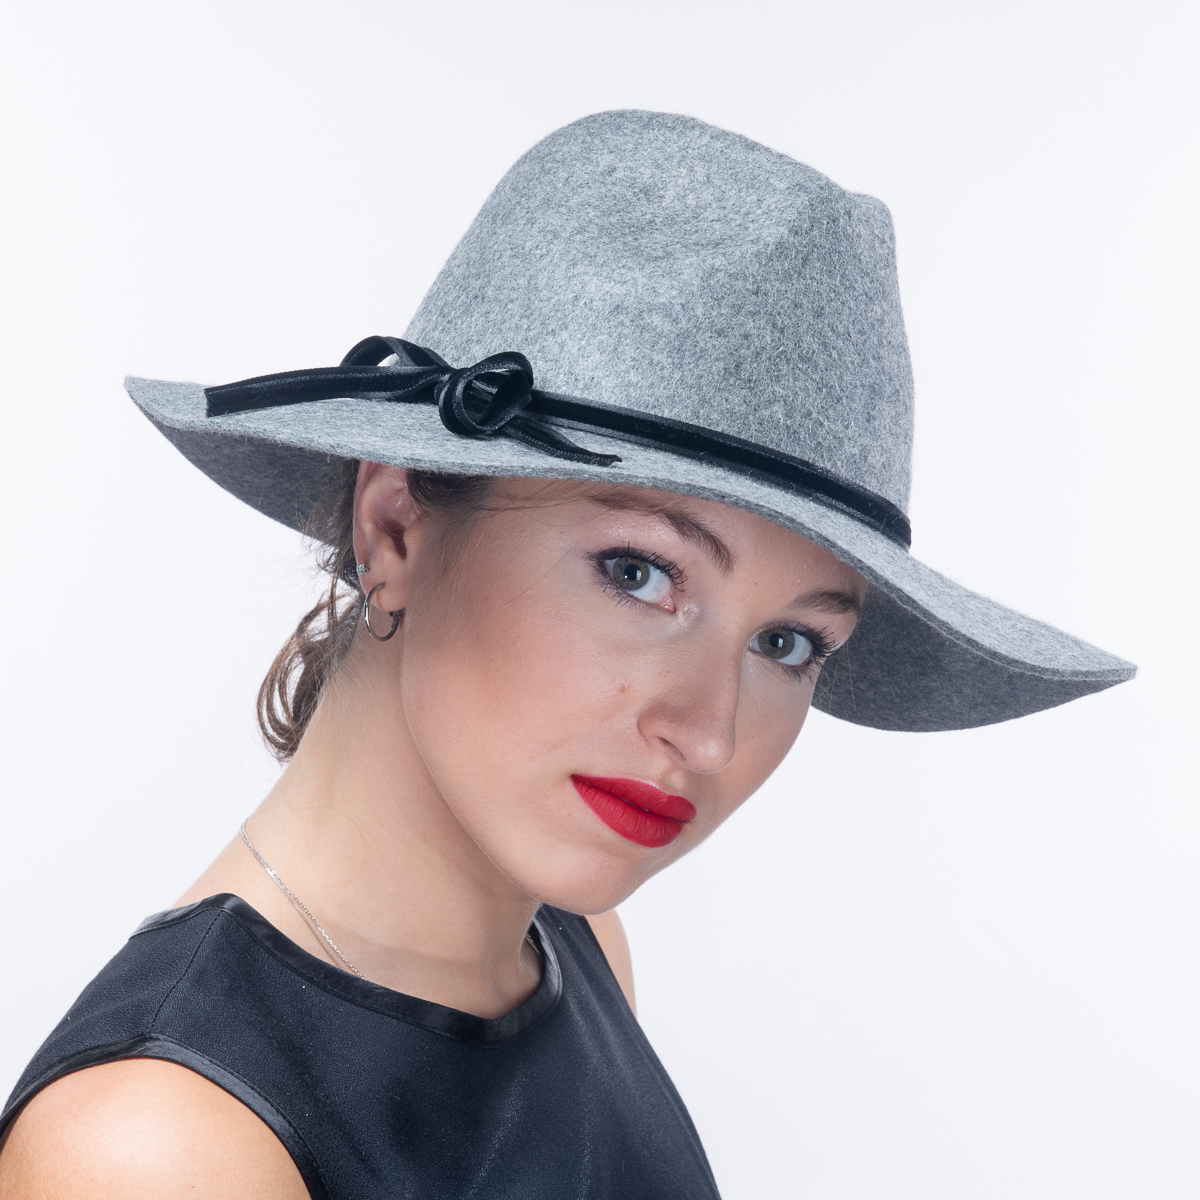 e4a2d9c6 Grey Black Wool Felt Floppy Brim Fedora Hats-400777-GY.BK- Sun Yorkos |  KaKyCo Accessories